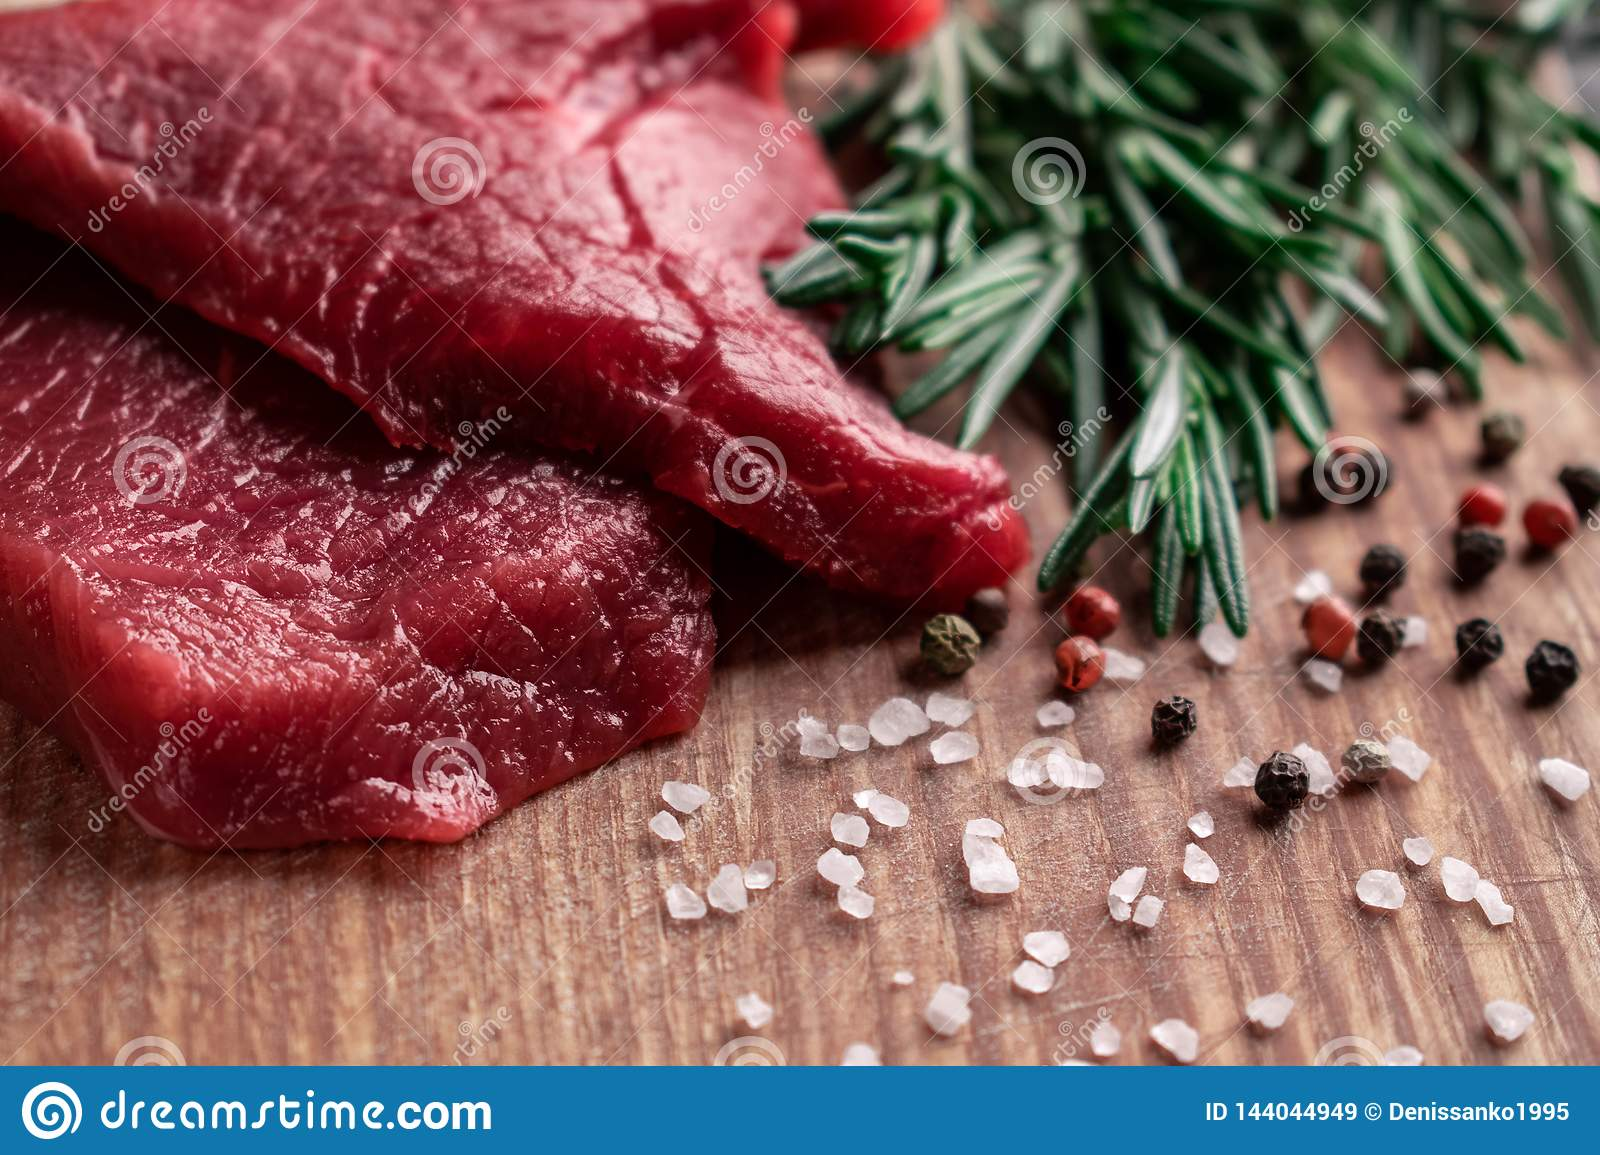 Raw beef steak with rosemary black, red pepper and coarse sea salt